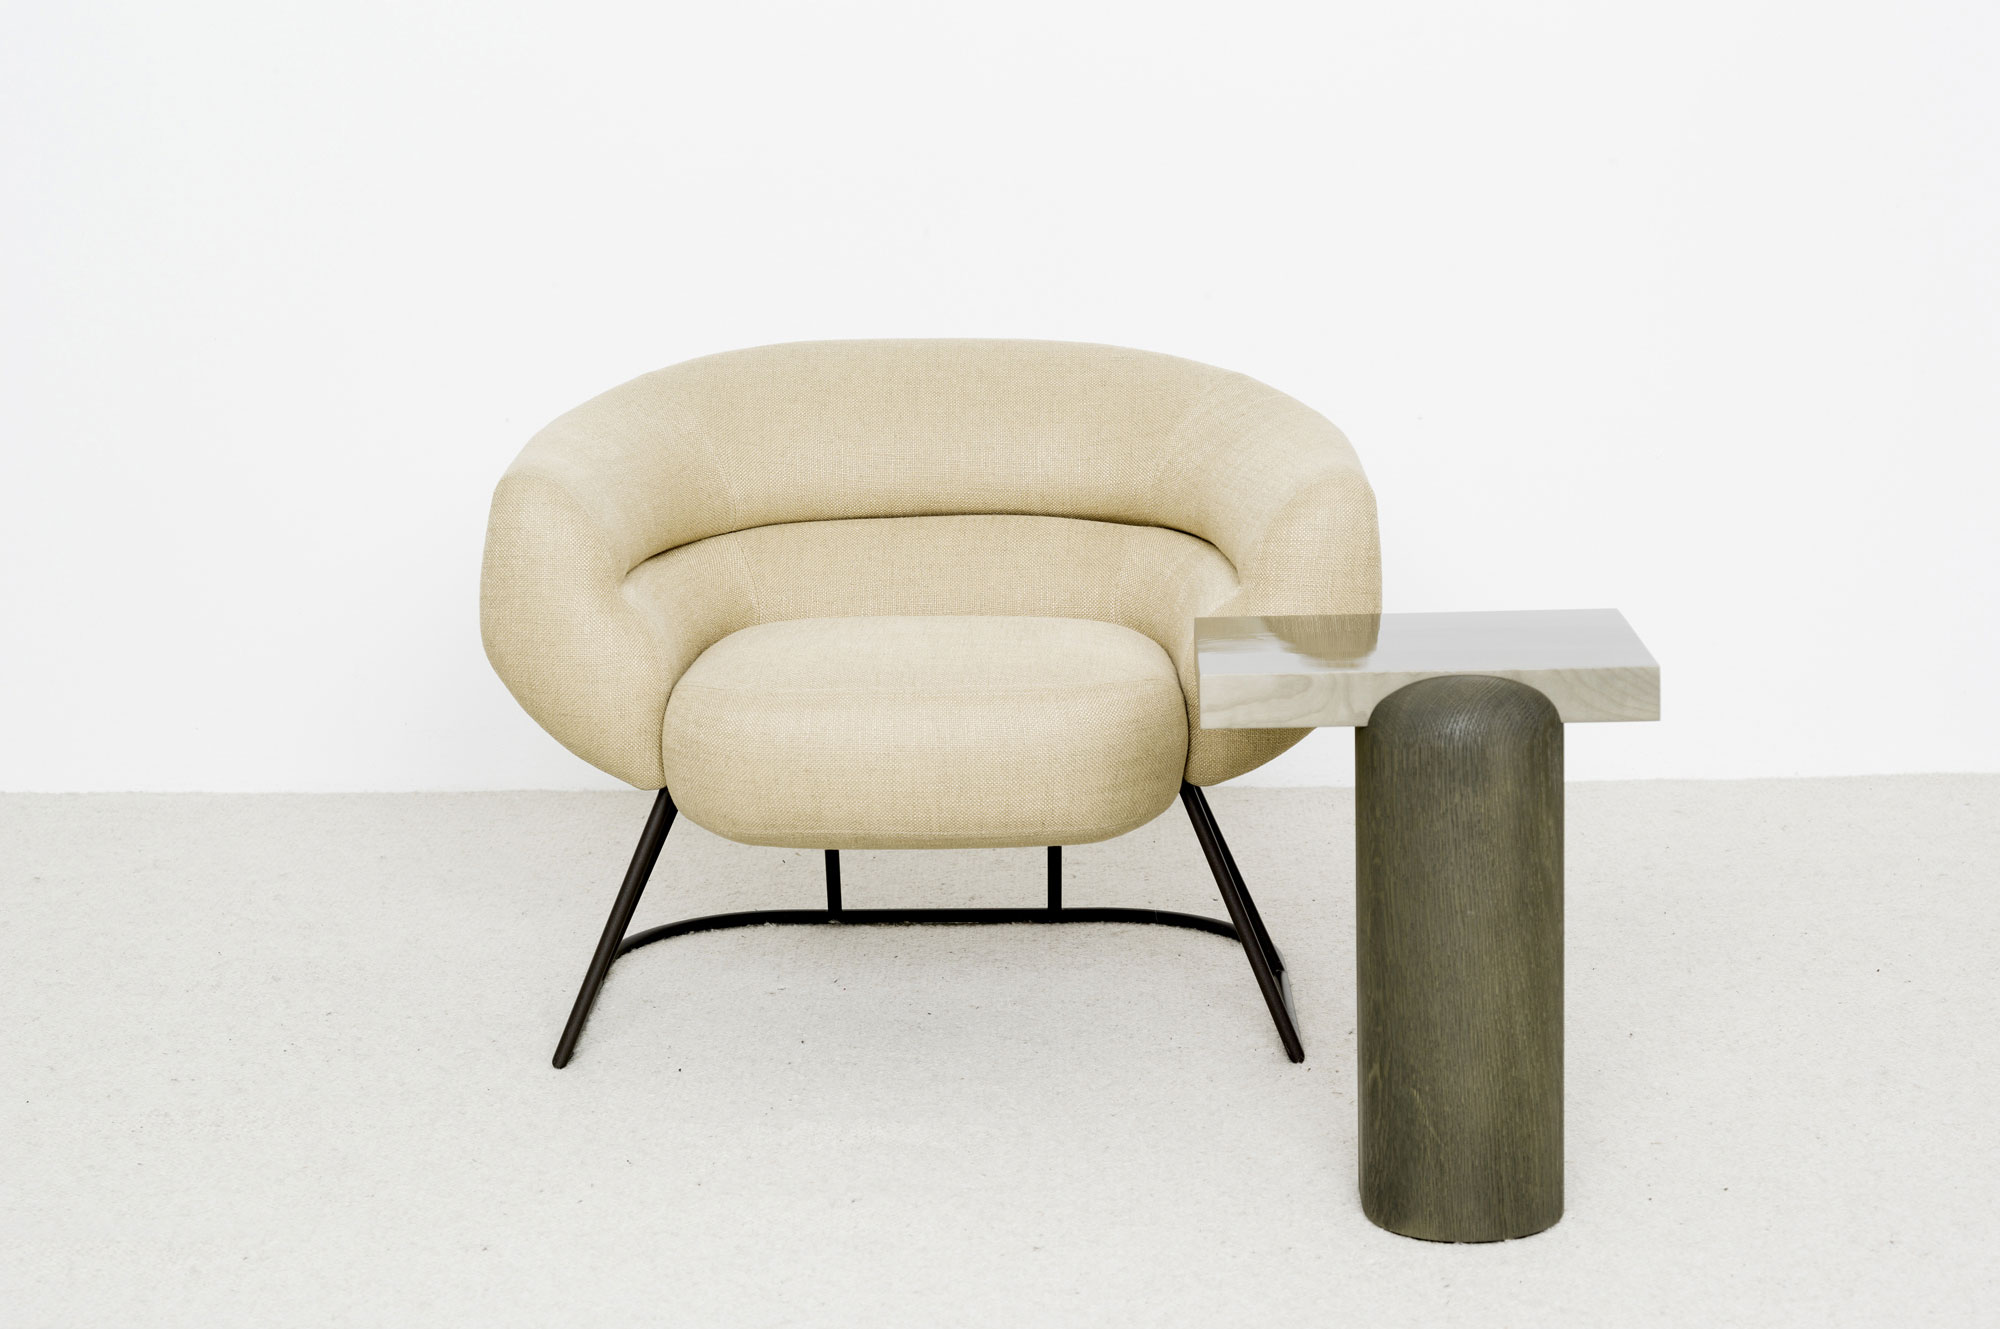 Fauteuil Dje Table Appoint Leo - Christophe Delcourt